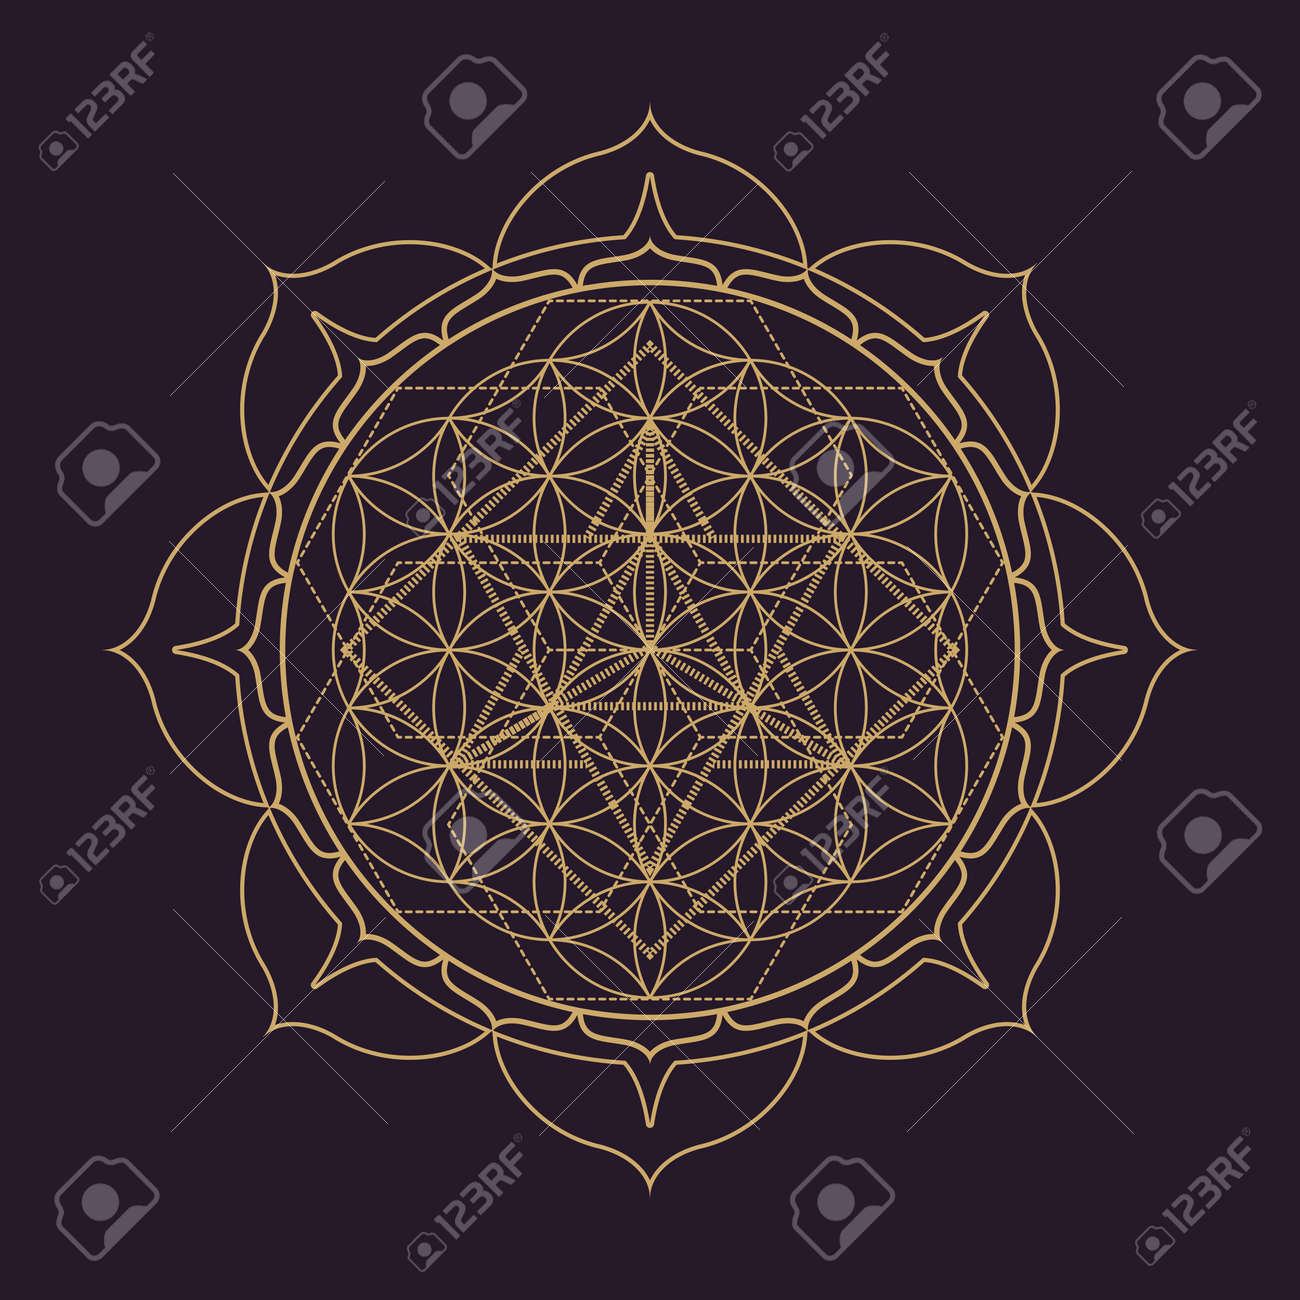 vector gold monochrome design abstract mandala sacred geometry illustration Flower of life Merkaba lotus isolated dark brown background Banque d'images - 67257101